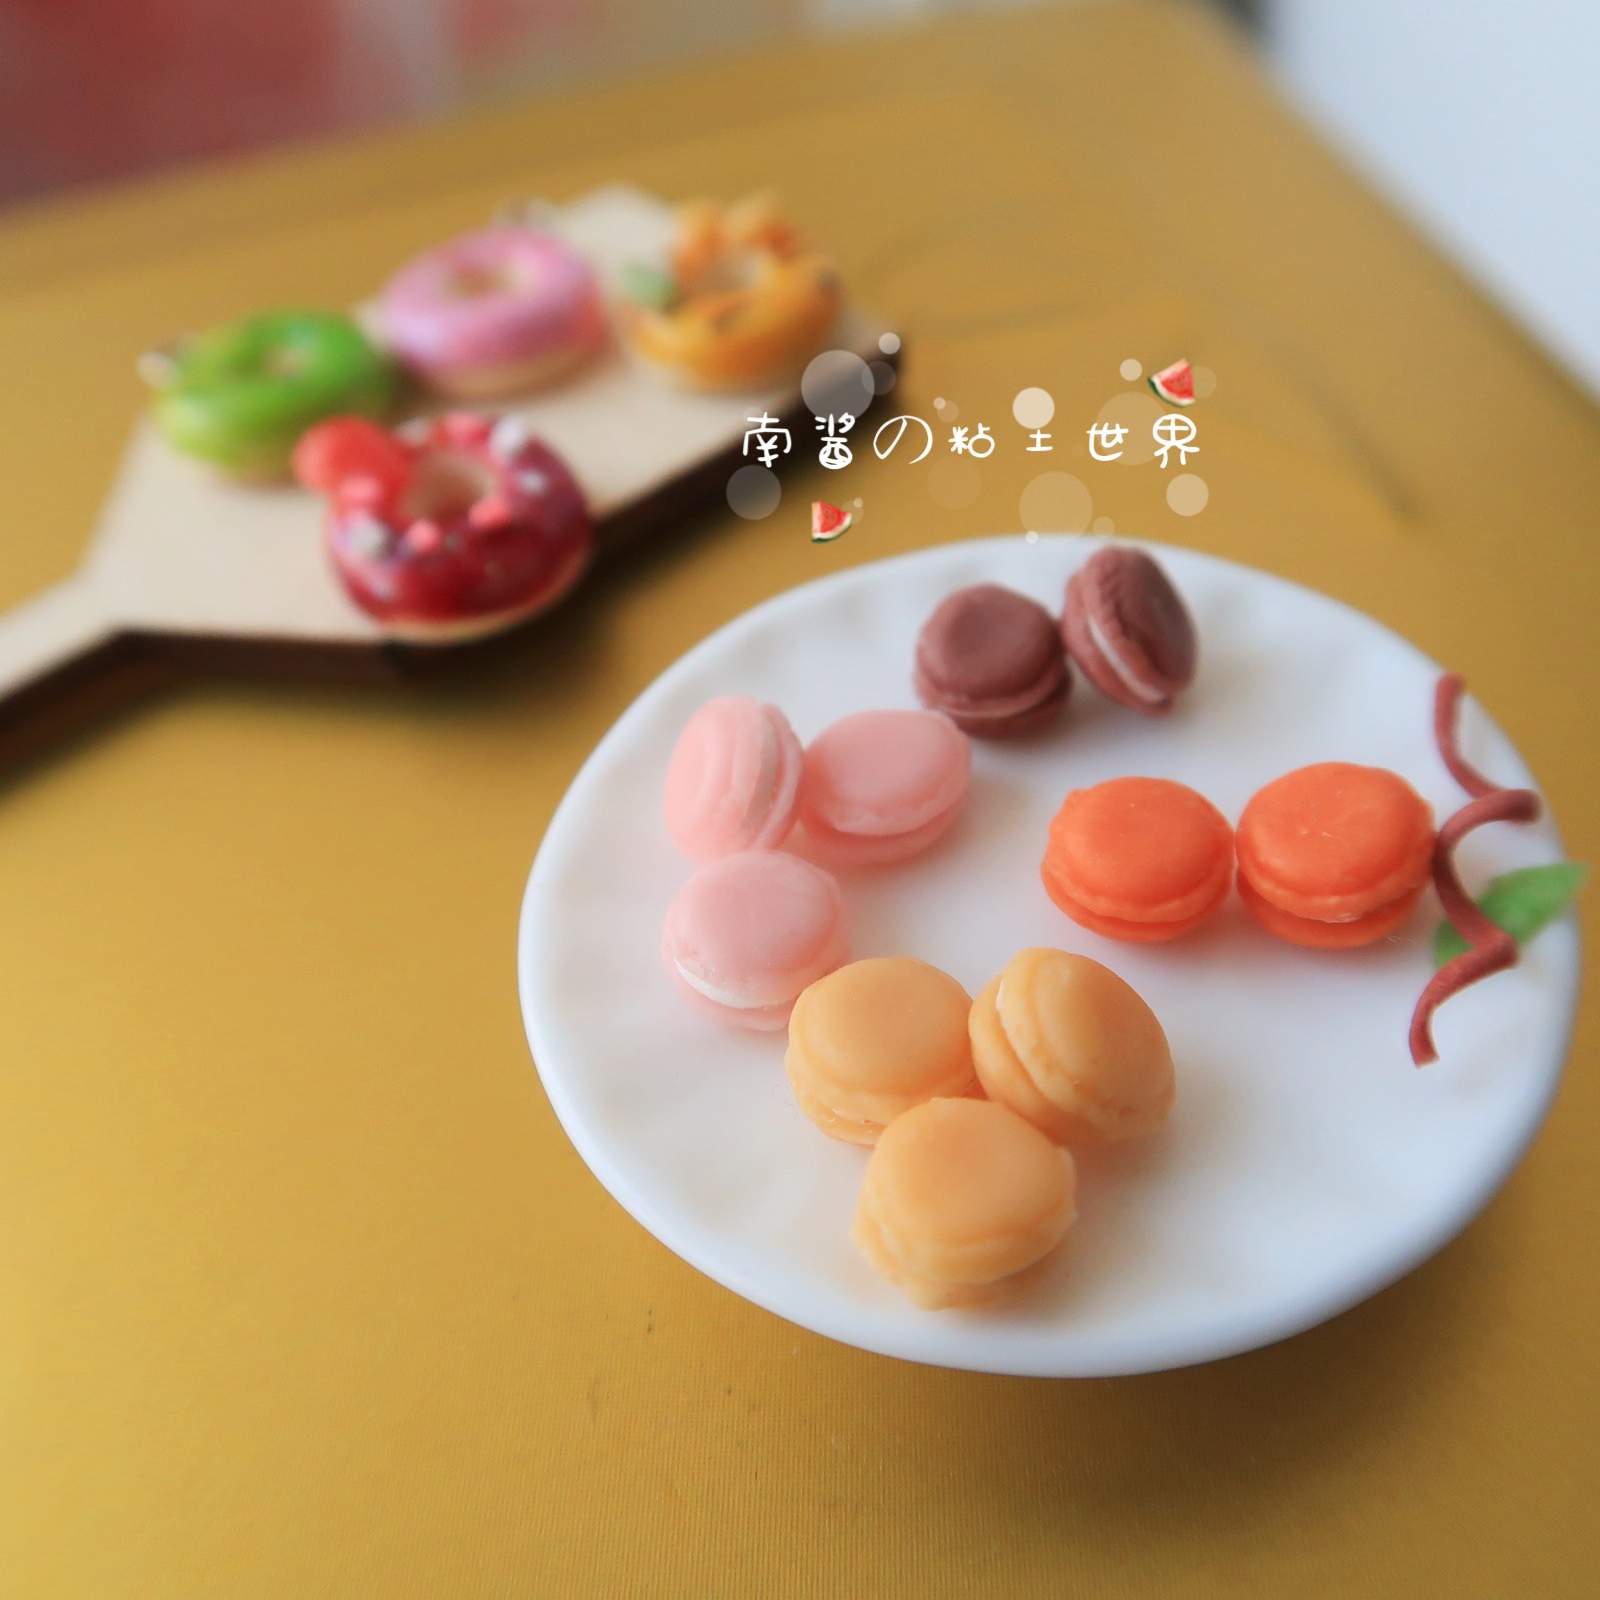 Miniature food and game hand made macarone ob11 Mini scene 12 points 6 points doll house accessories BJD